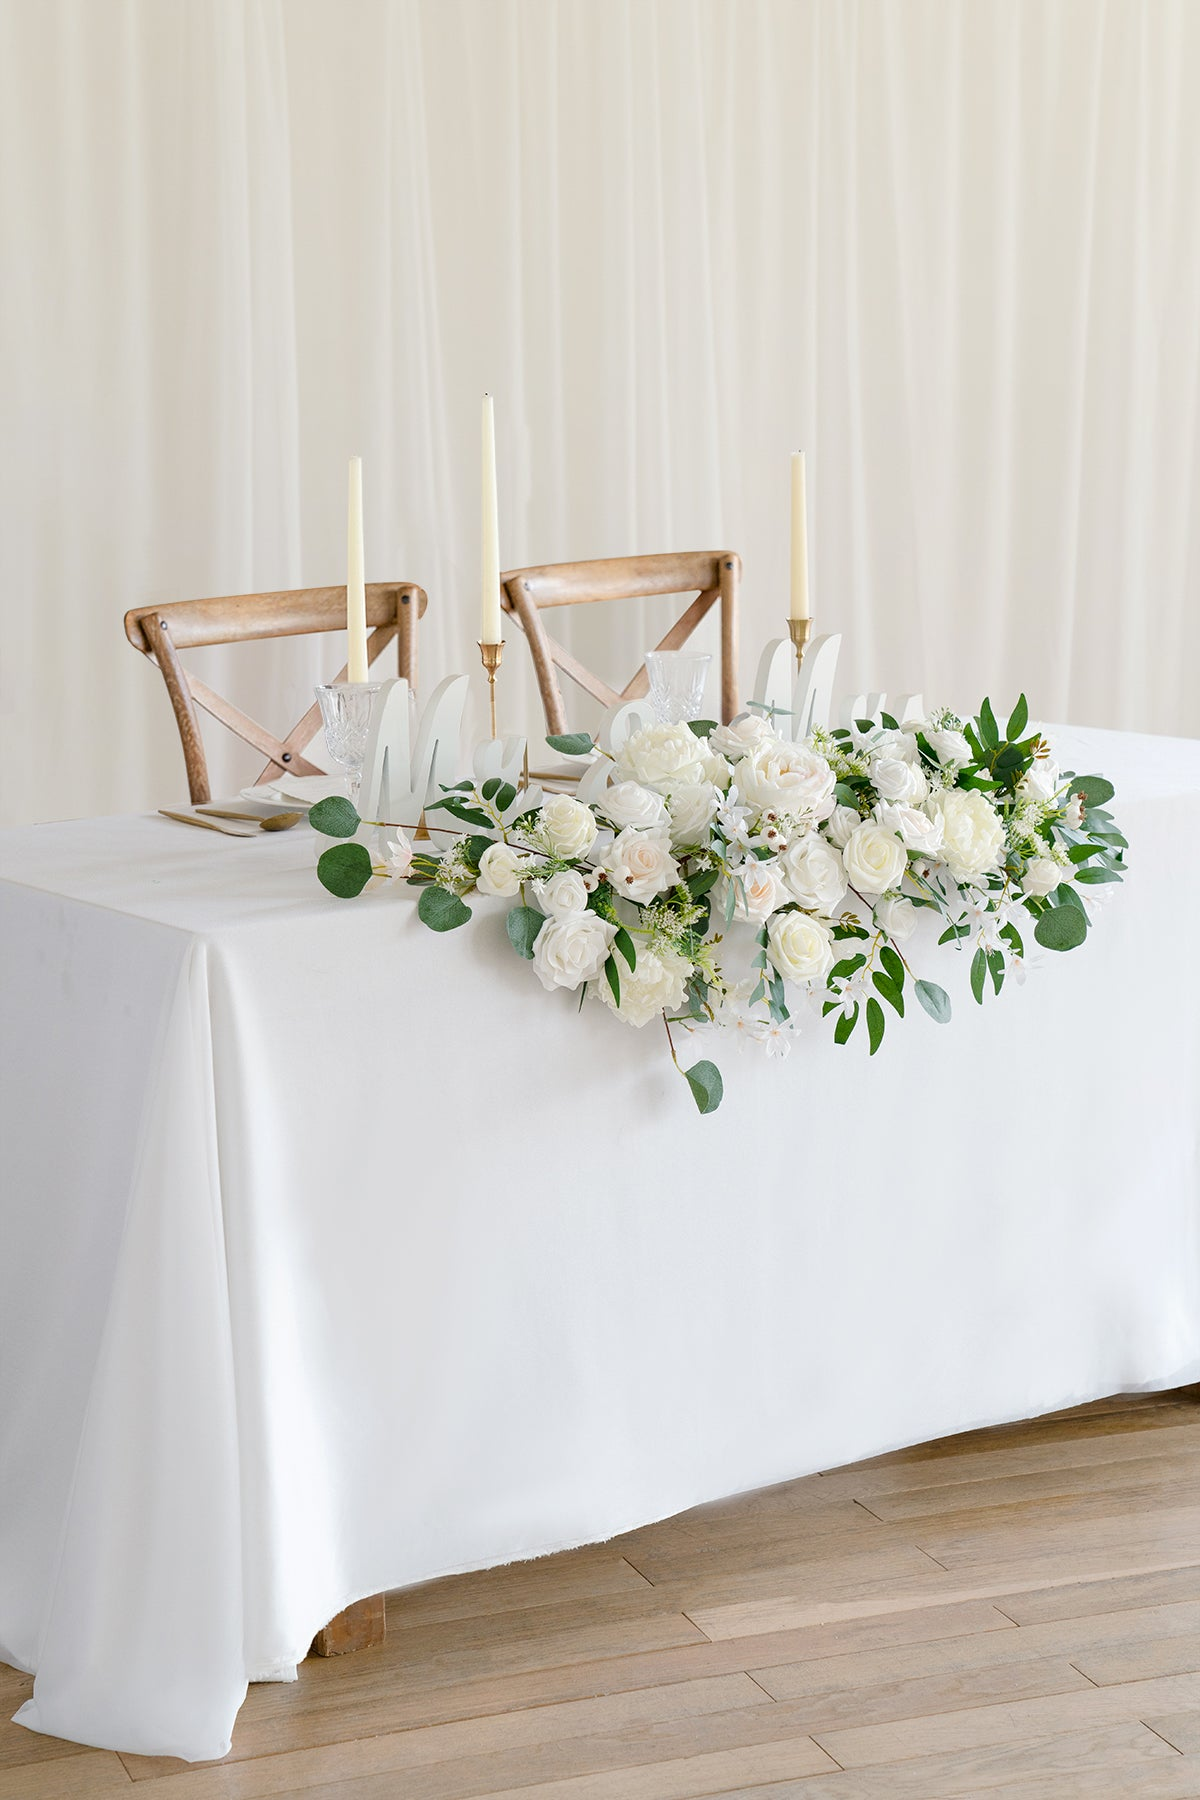 Flower Swag and Tablecloth for Sweetheart/Head Table - Natural Whites